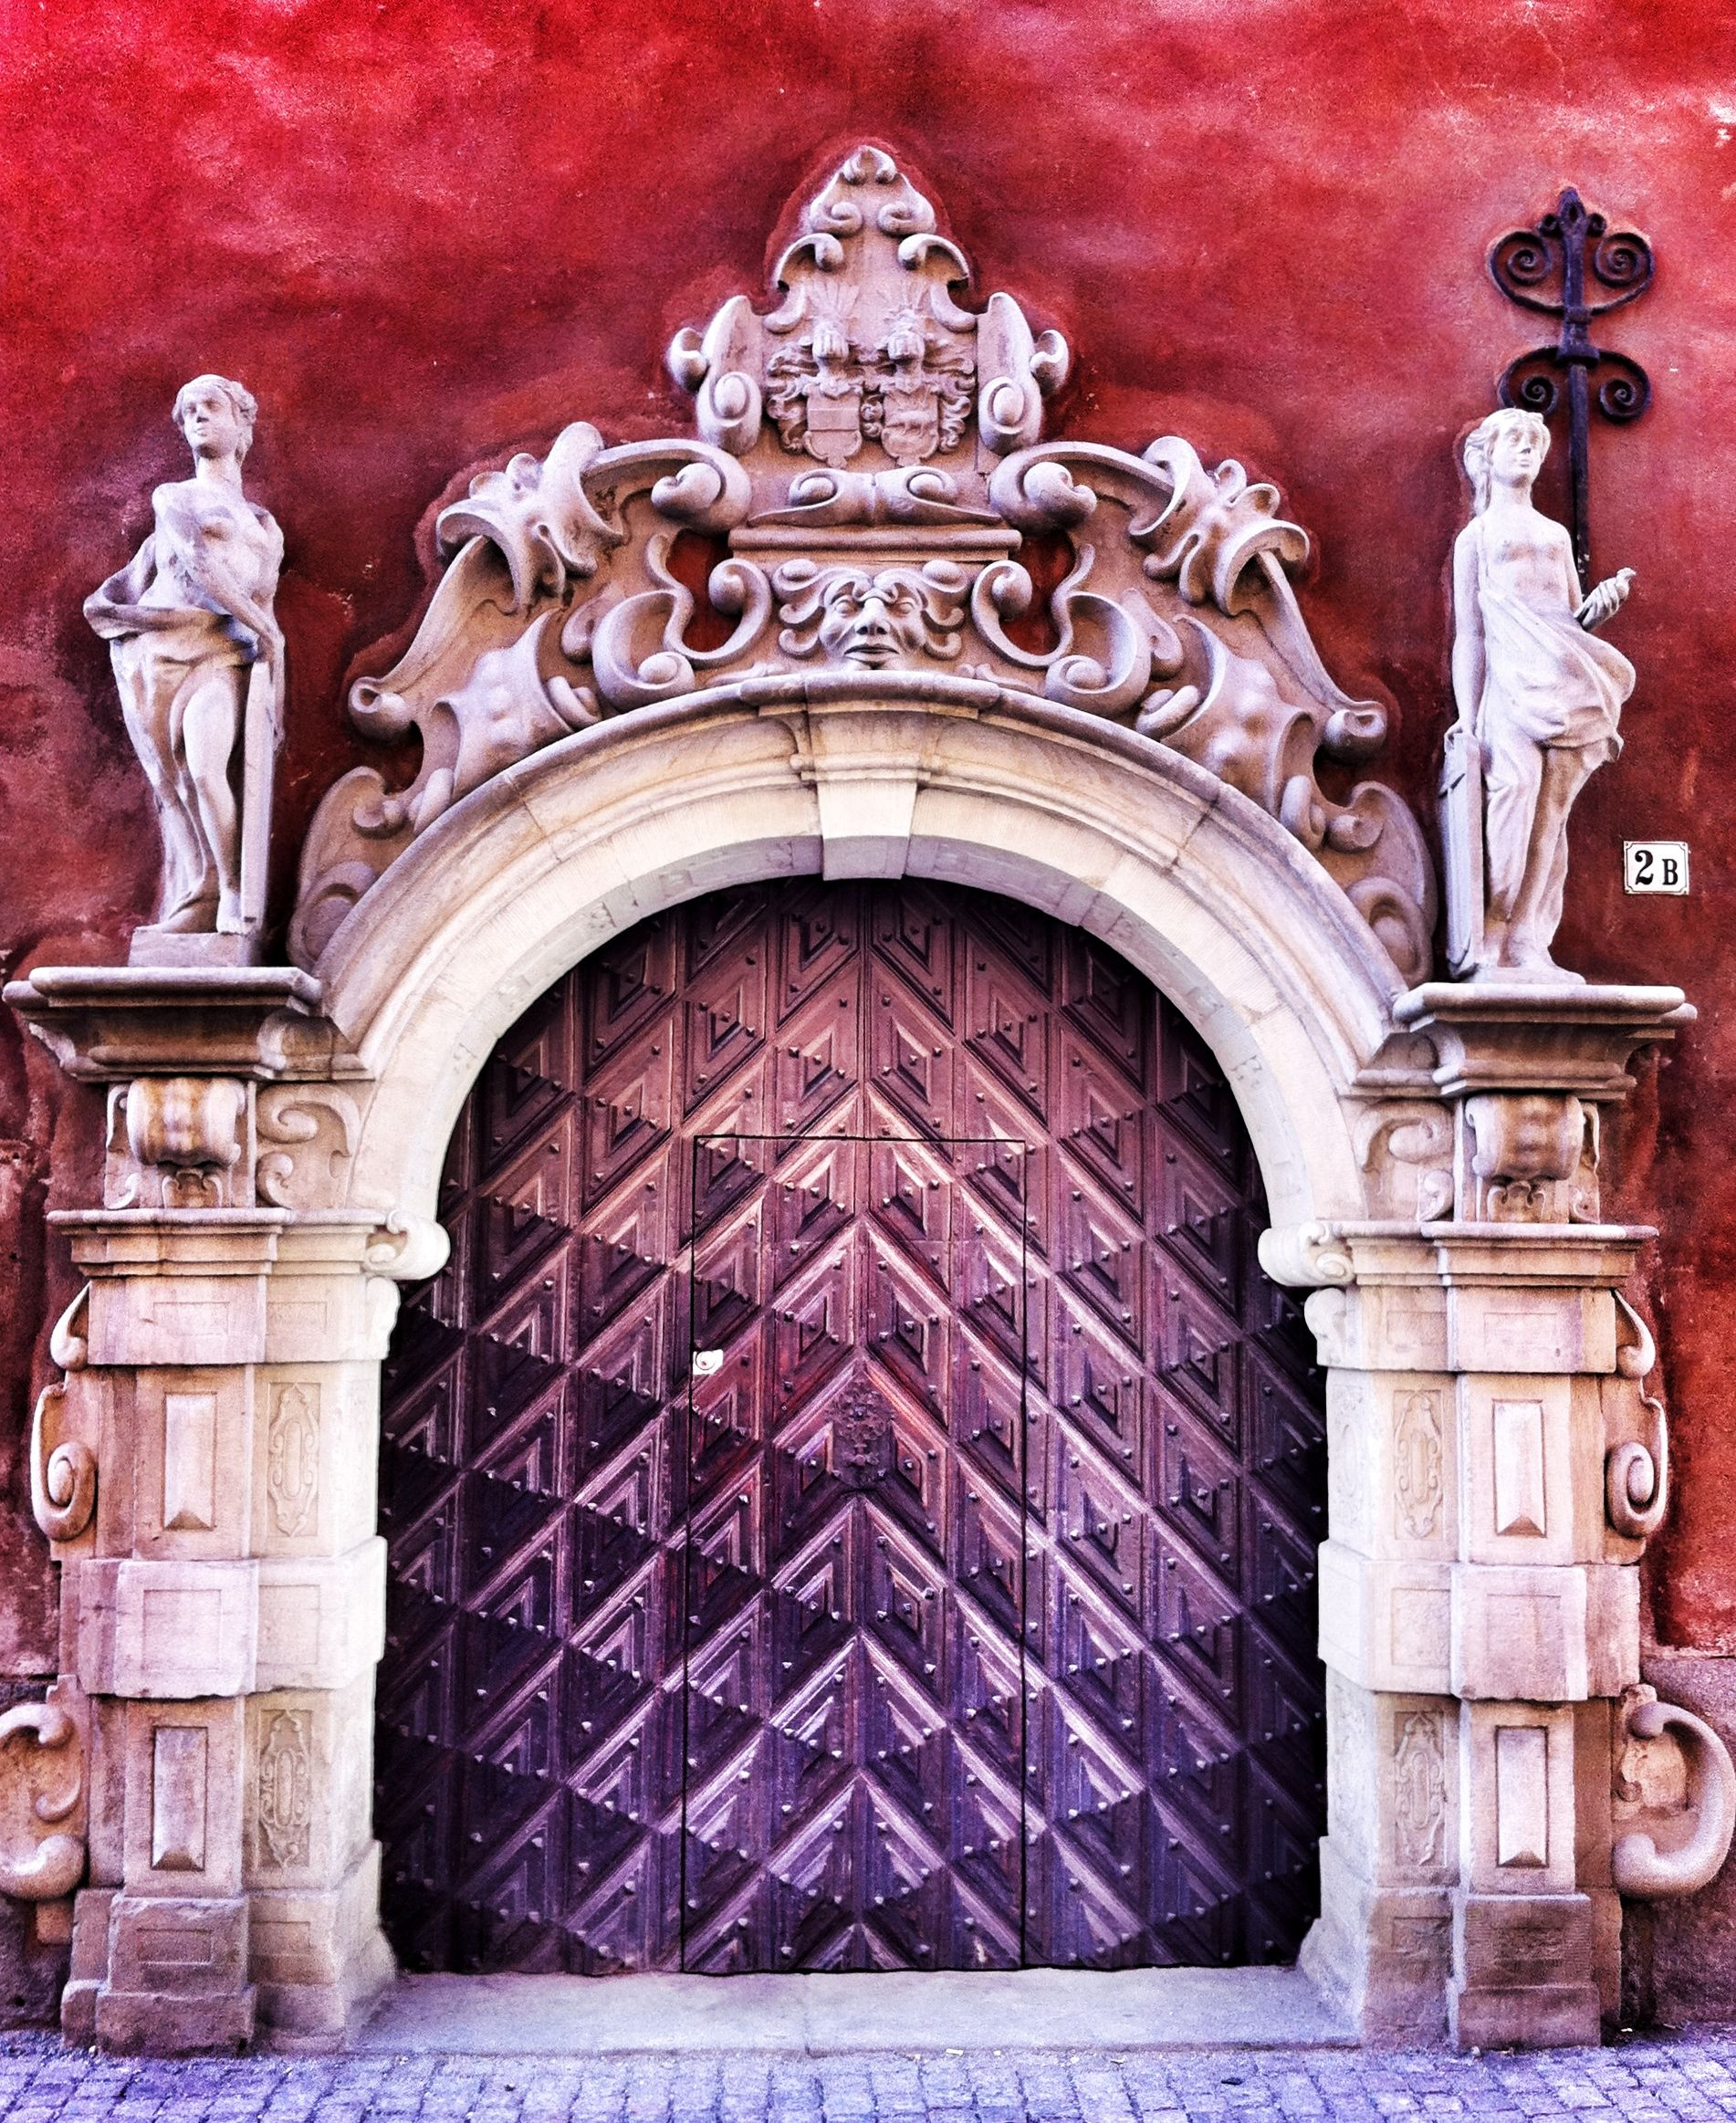 Stockholm, Sweden.  Yes, it's a door but it's beautiful and masterpiece in its own right.